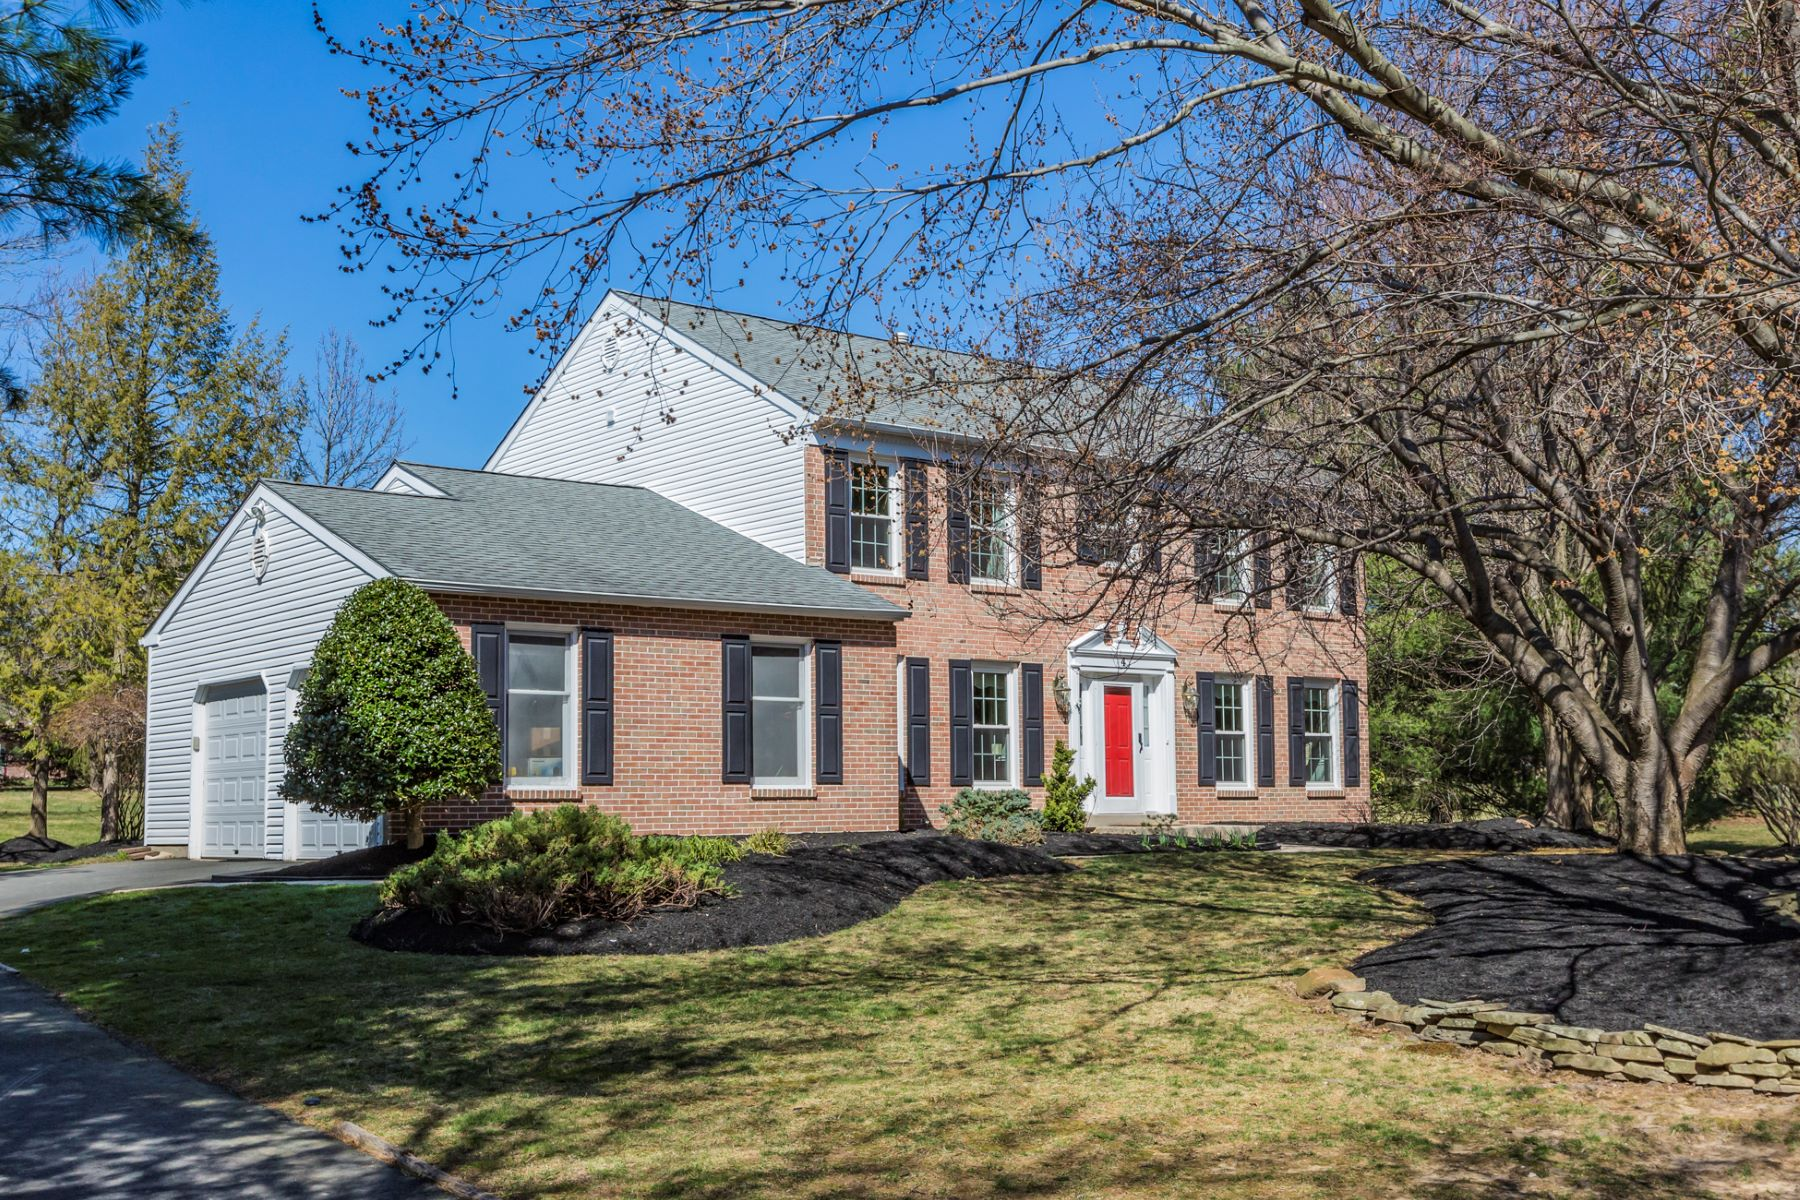 Single Family Home for Sale at Classic Colonial with a Fresh, Youthful Air - Lawrence Township 4 Oxford Court Lawrenceville, 08648 United States